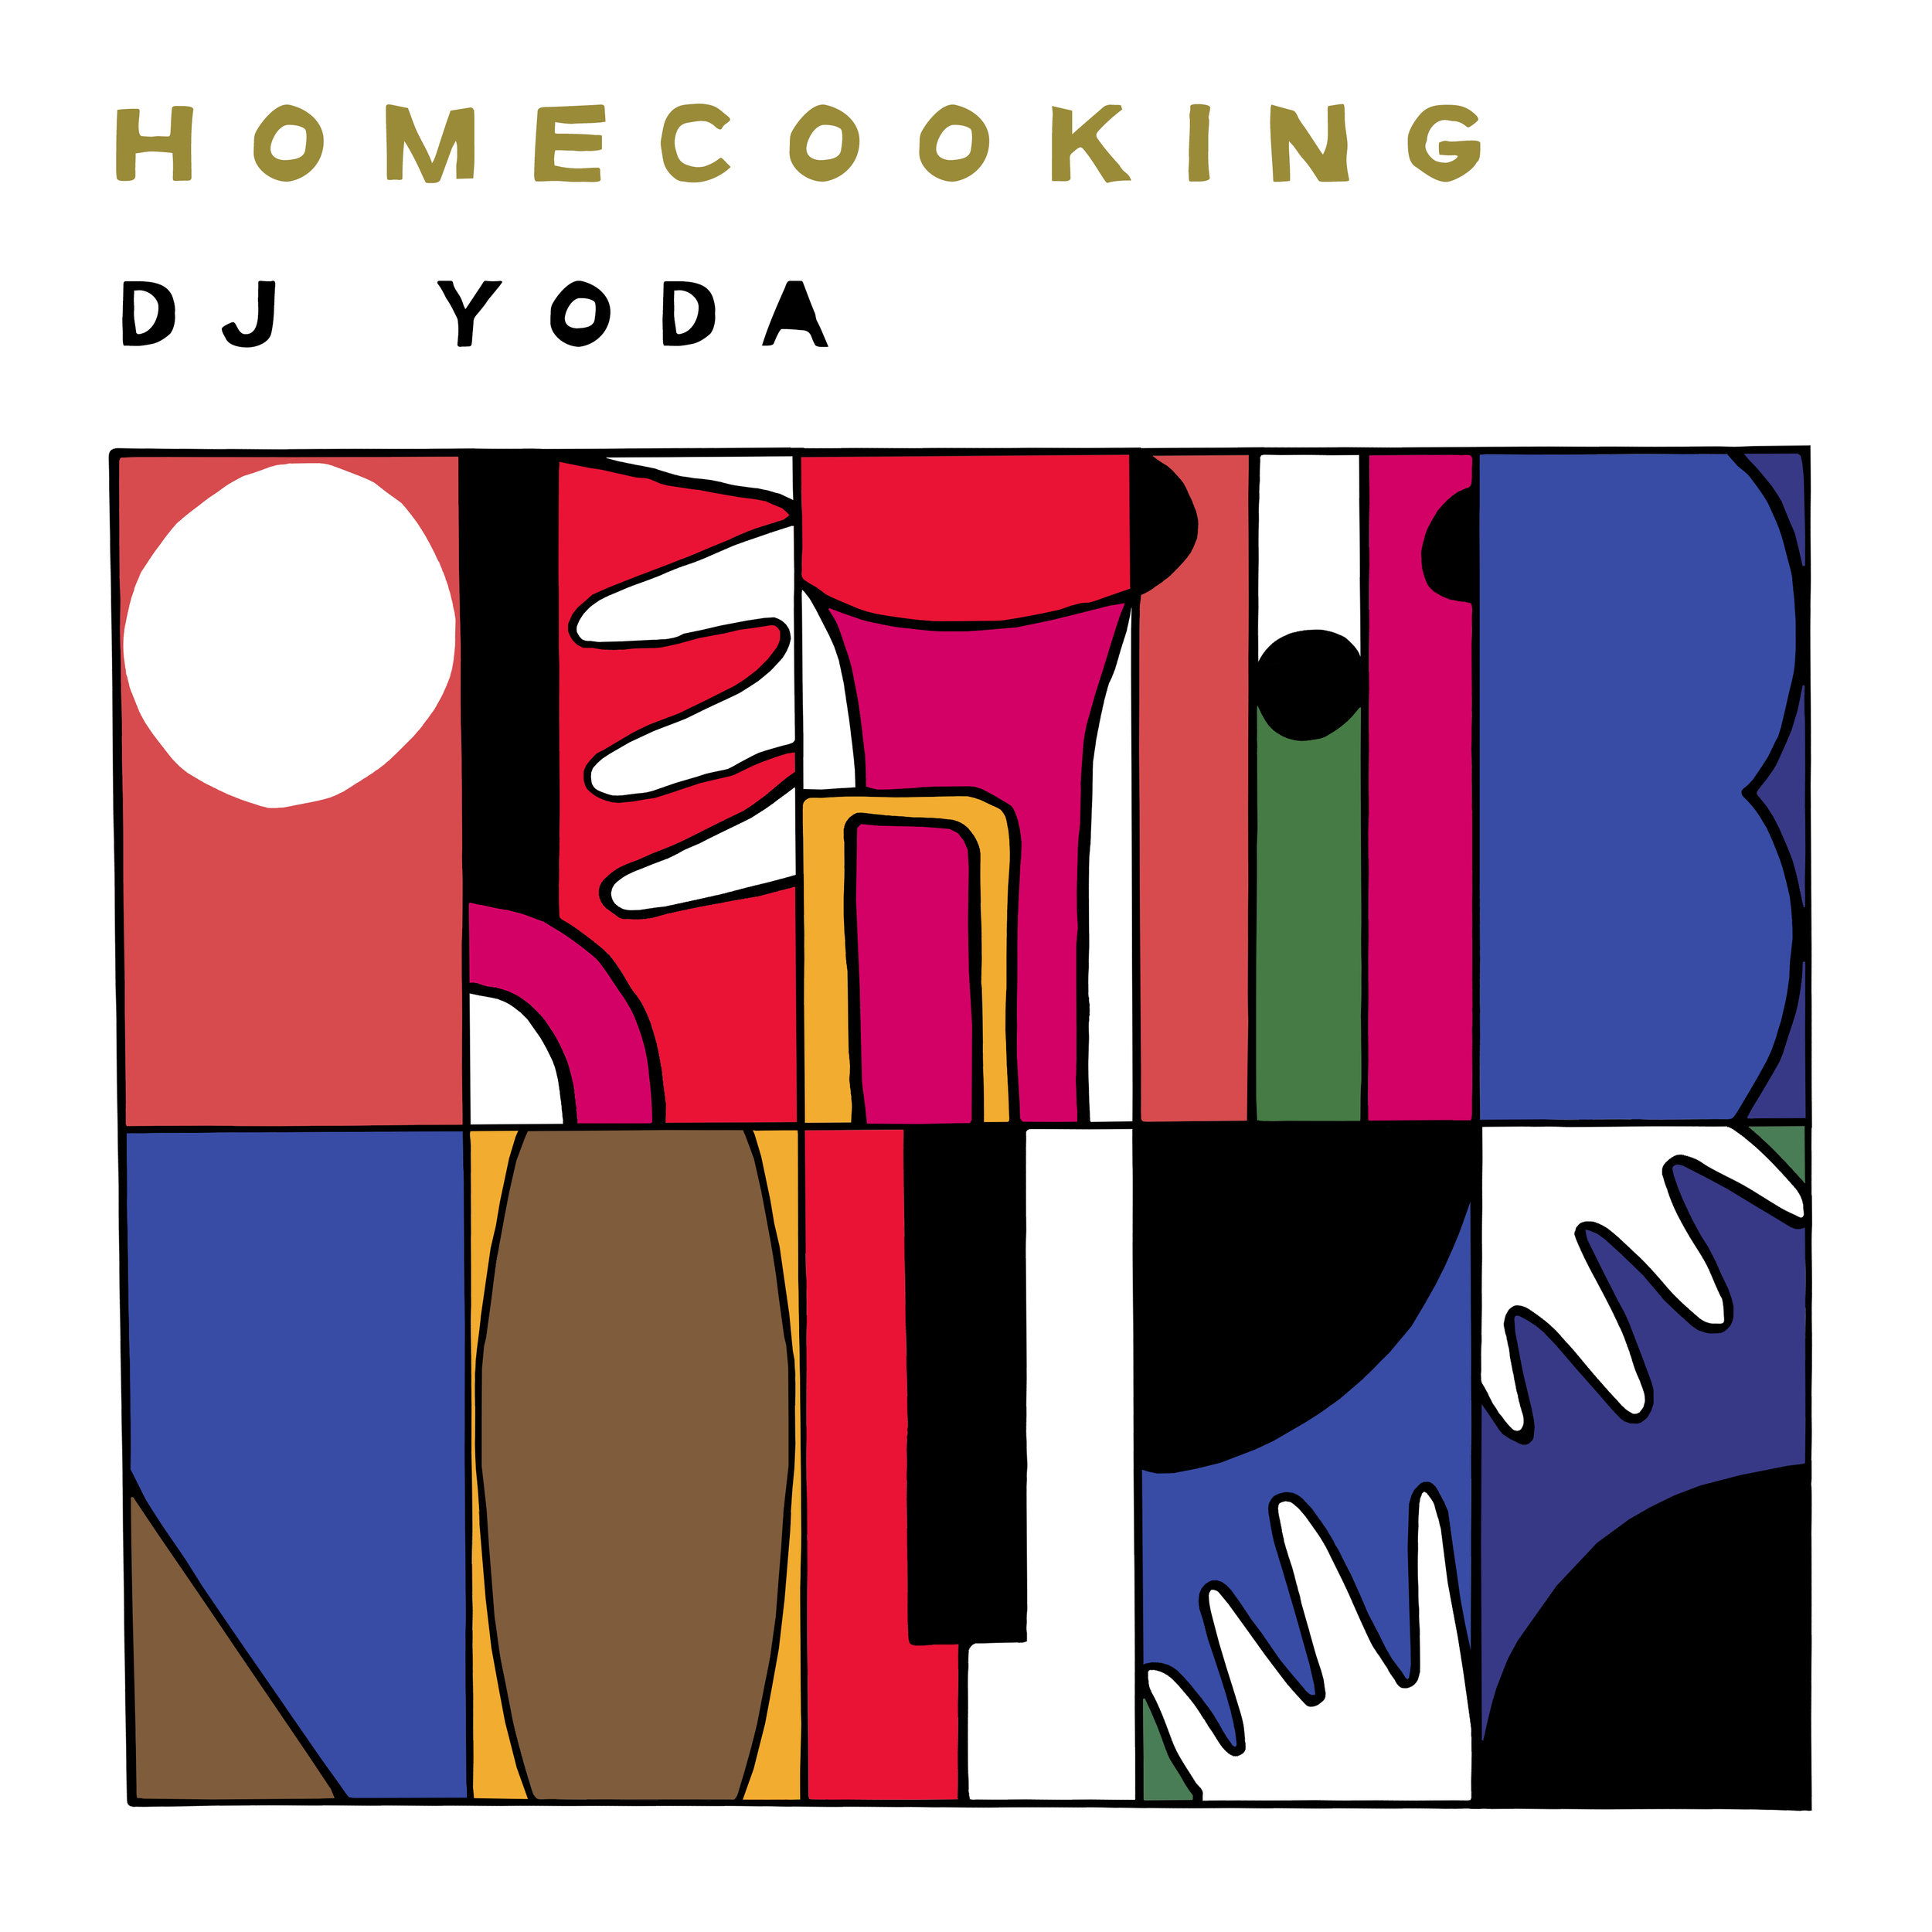 Homecooking_DJYoda_front_cover_update.jpg